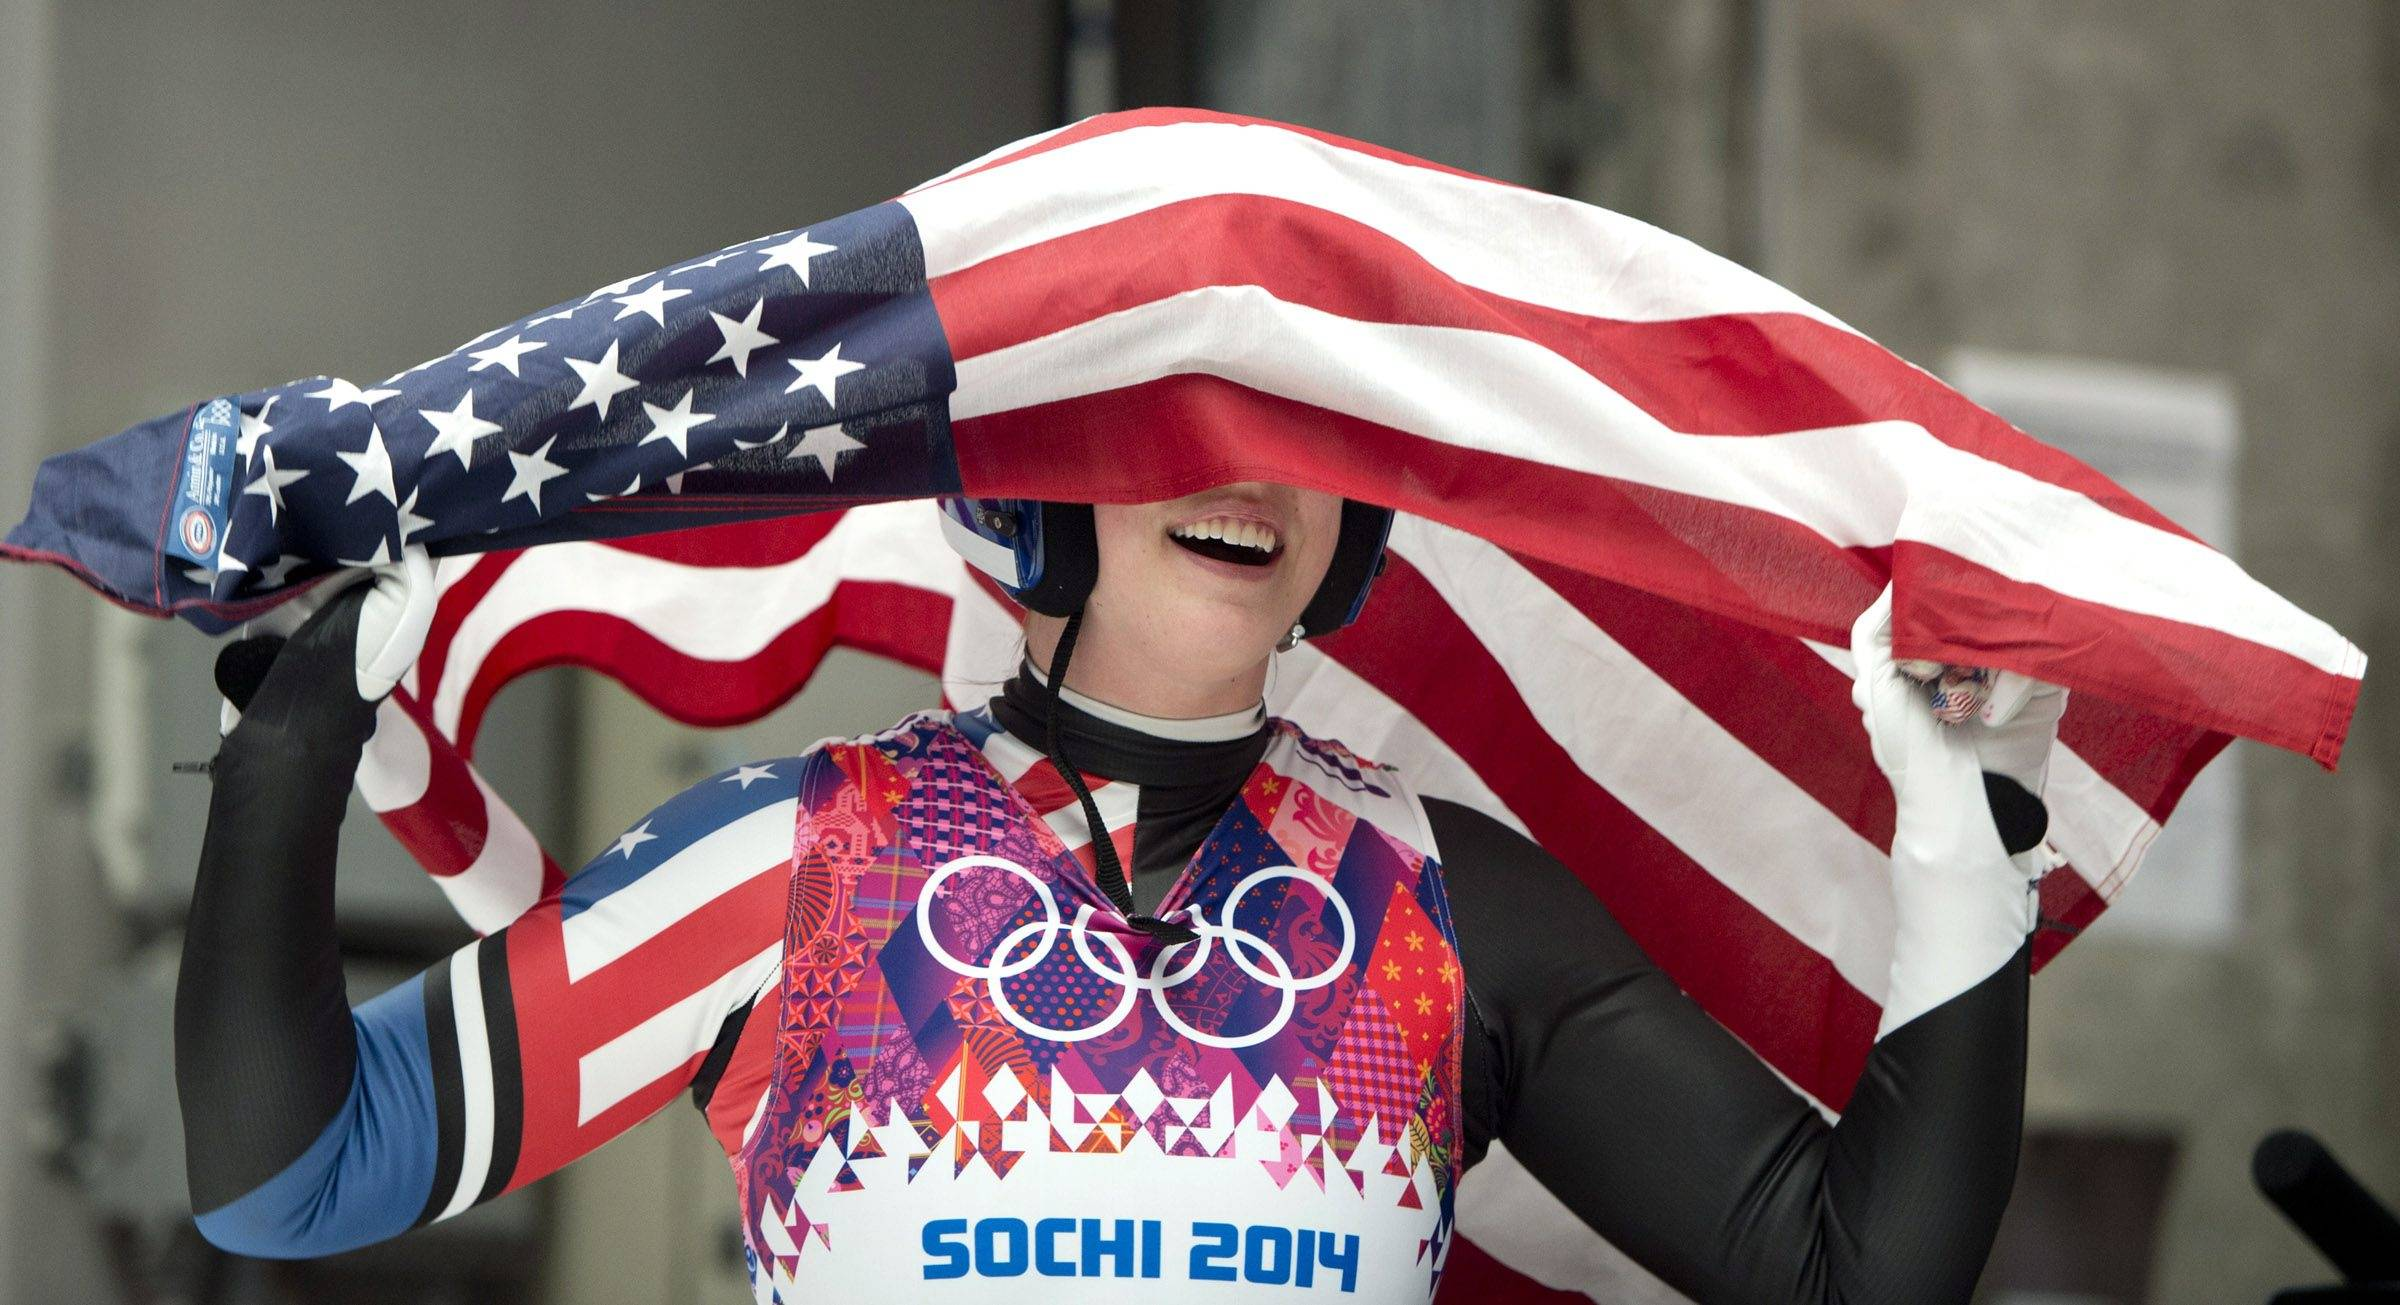 Erin Hamlin of the United States celebrates with the American flag after finishing her final run to win the bronze medal in the women's singles luge competition.